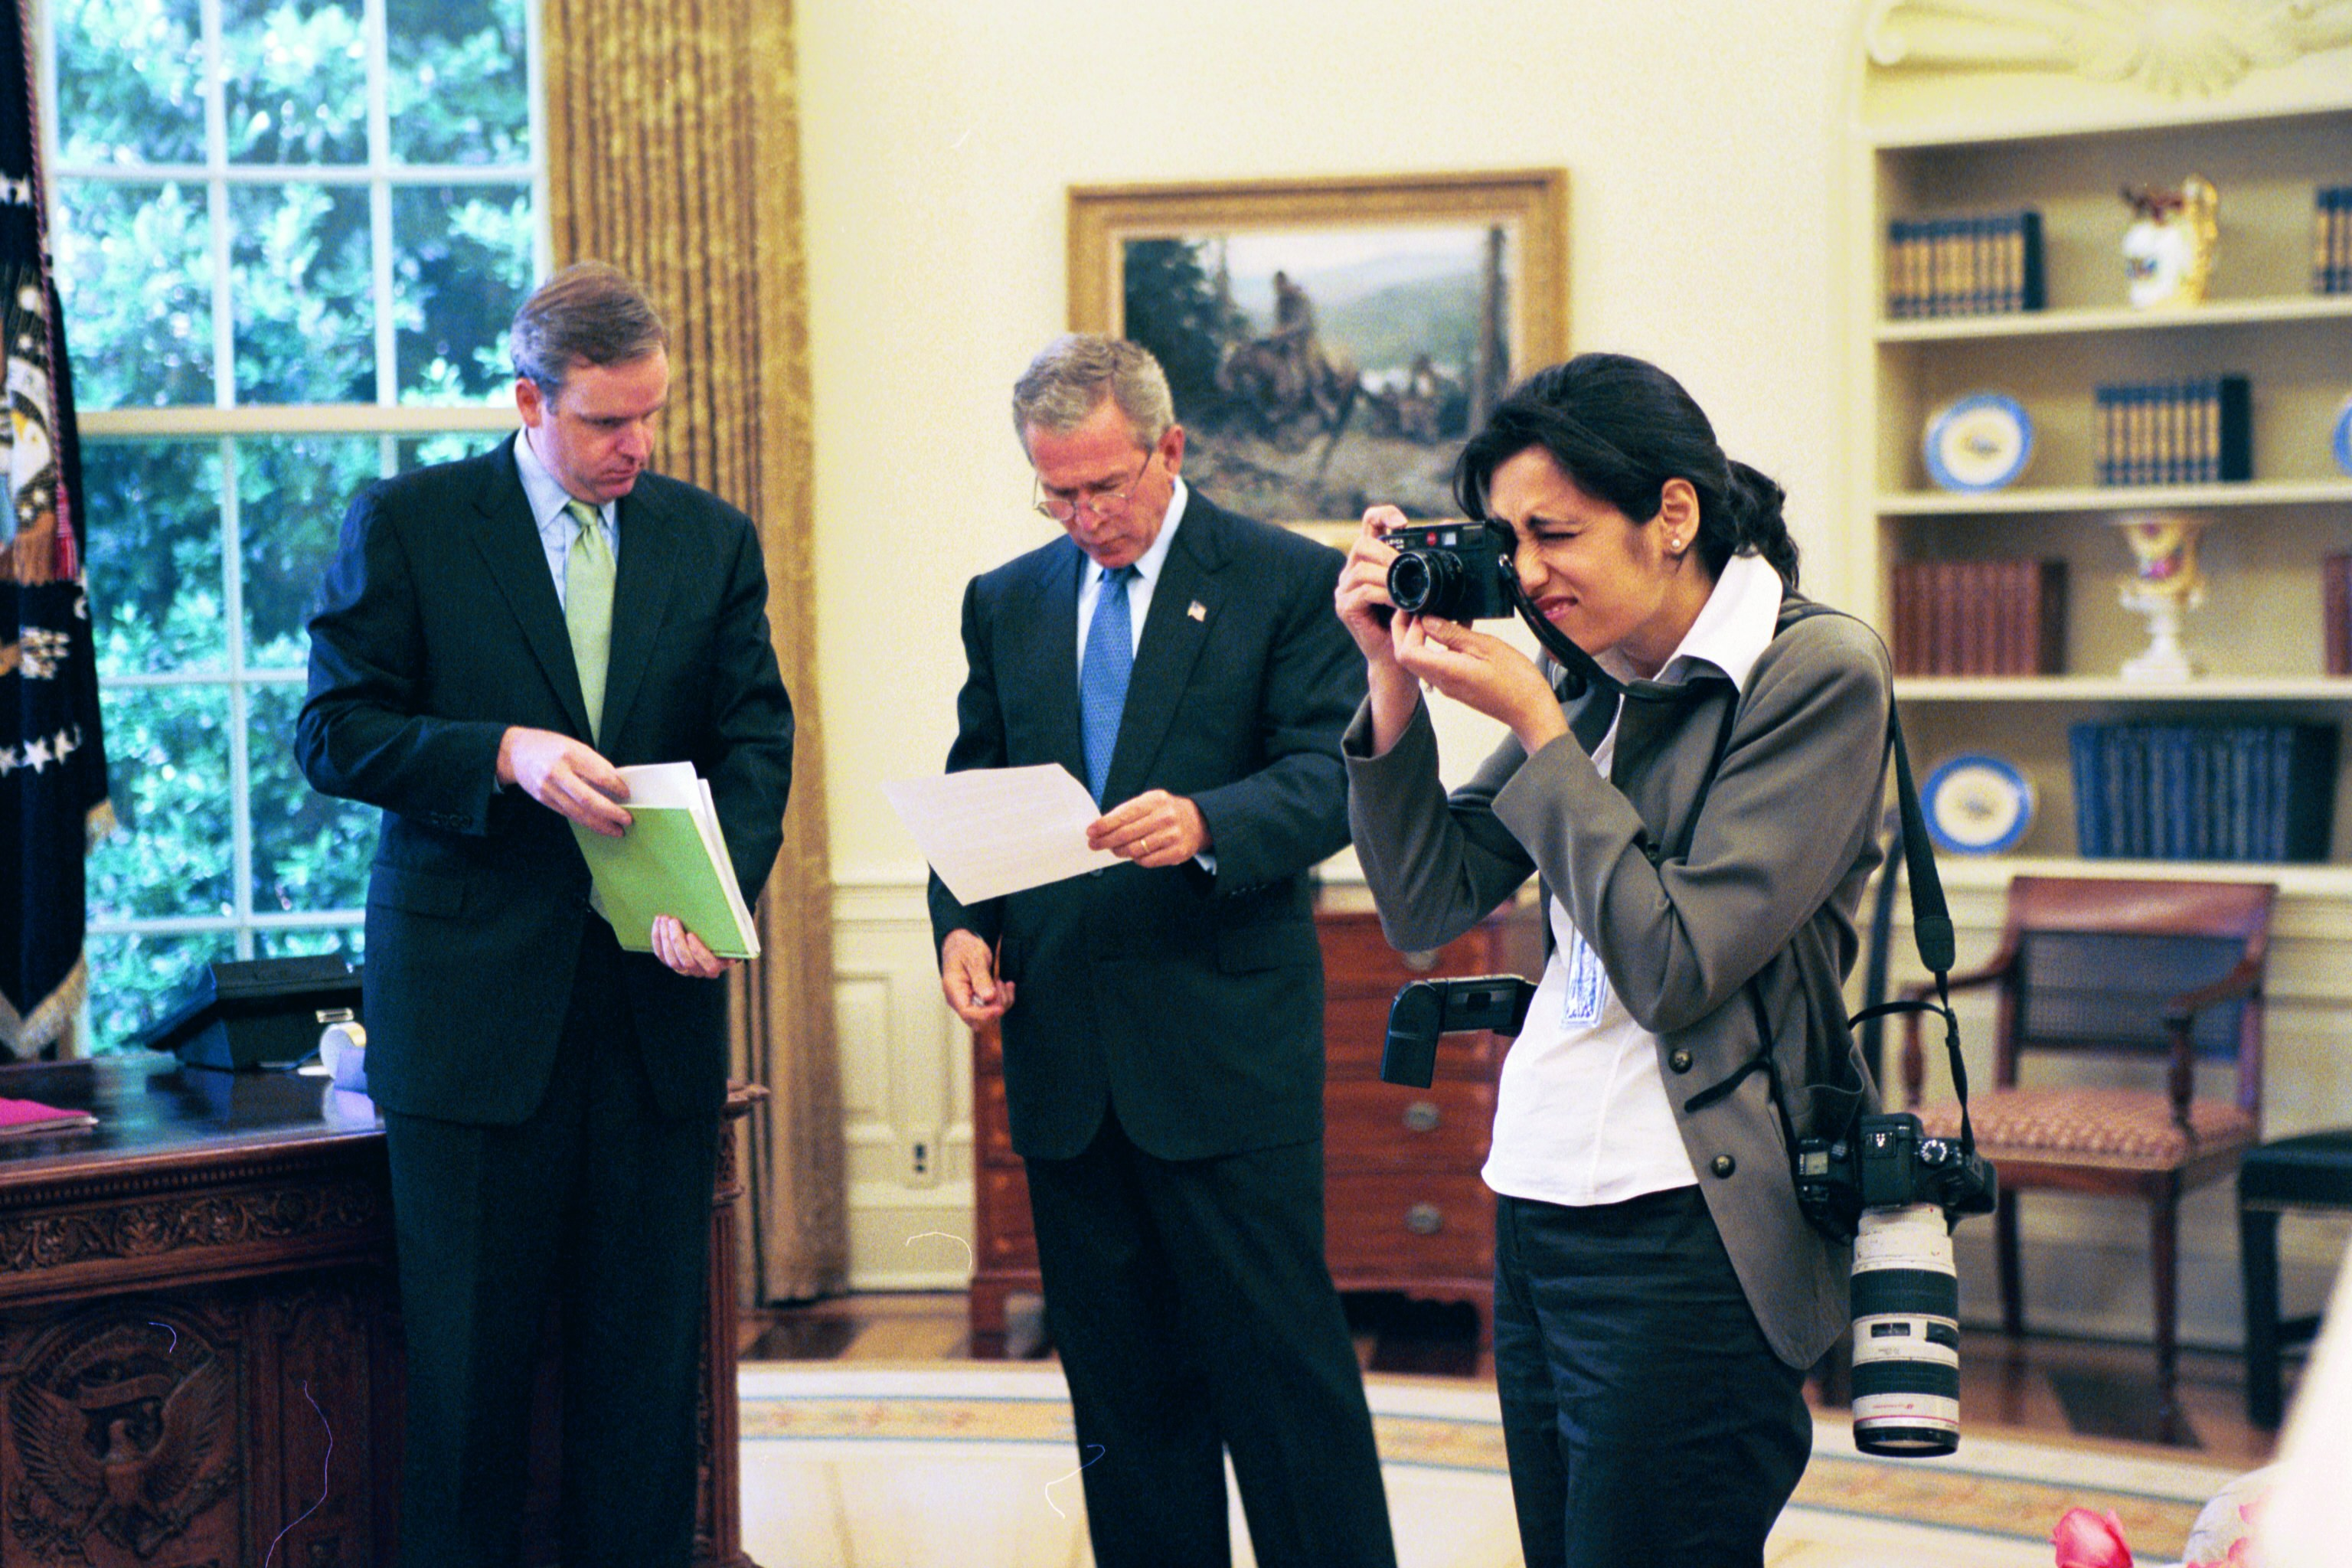 George Bush pre-brief and meeting with the President of Afghanistan in the Oval Office.